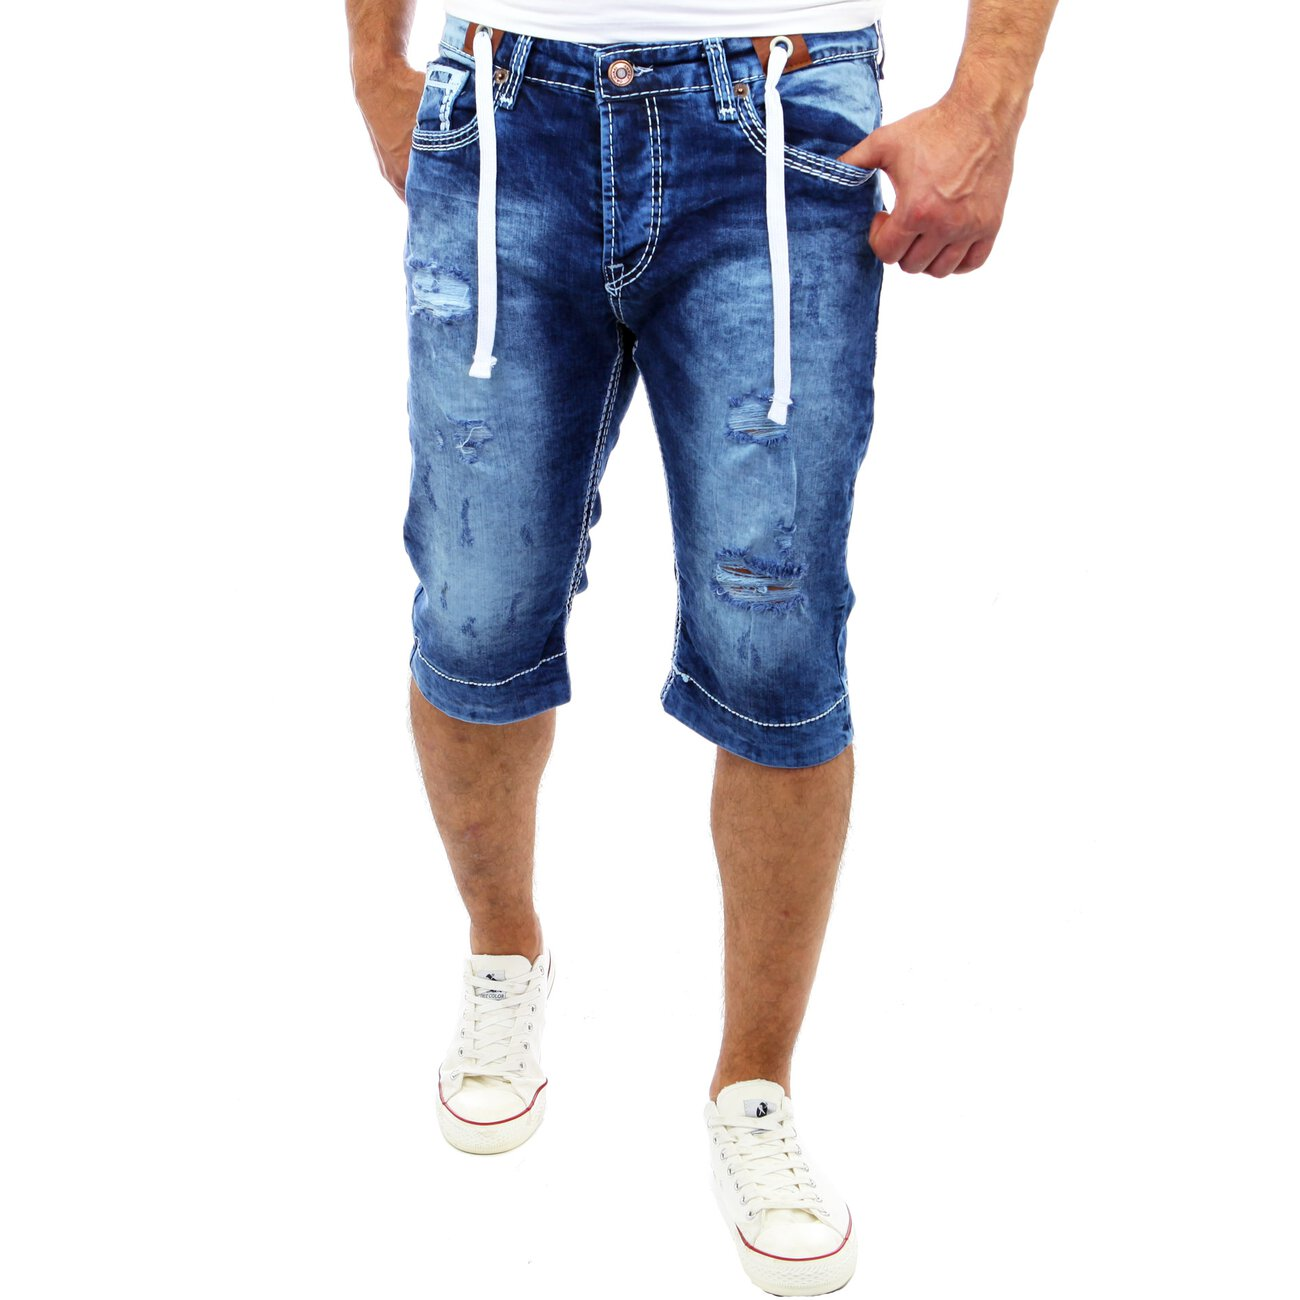 herren jeans shorts dicke naht denim kurze hose bermuda. Black Bedroom Furniture Sets. Home Design Ideas